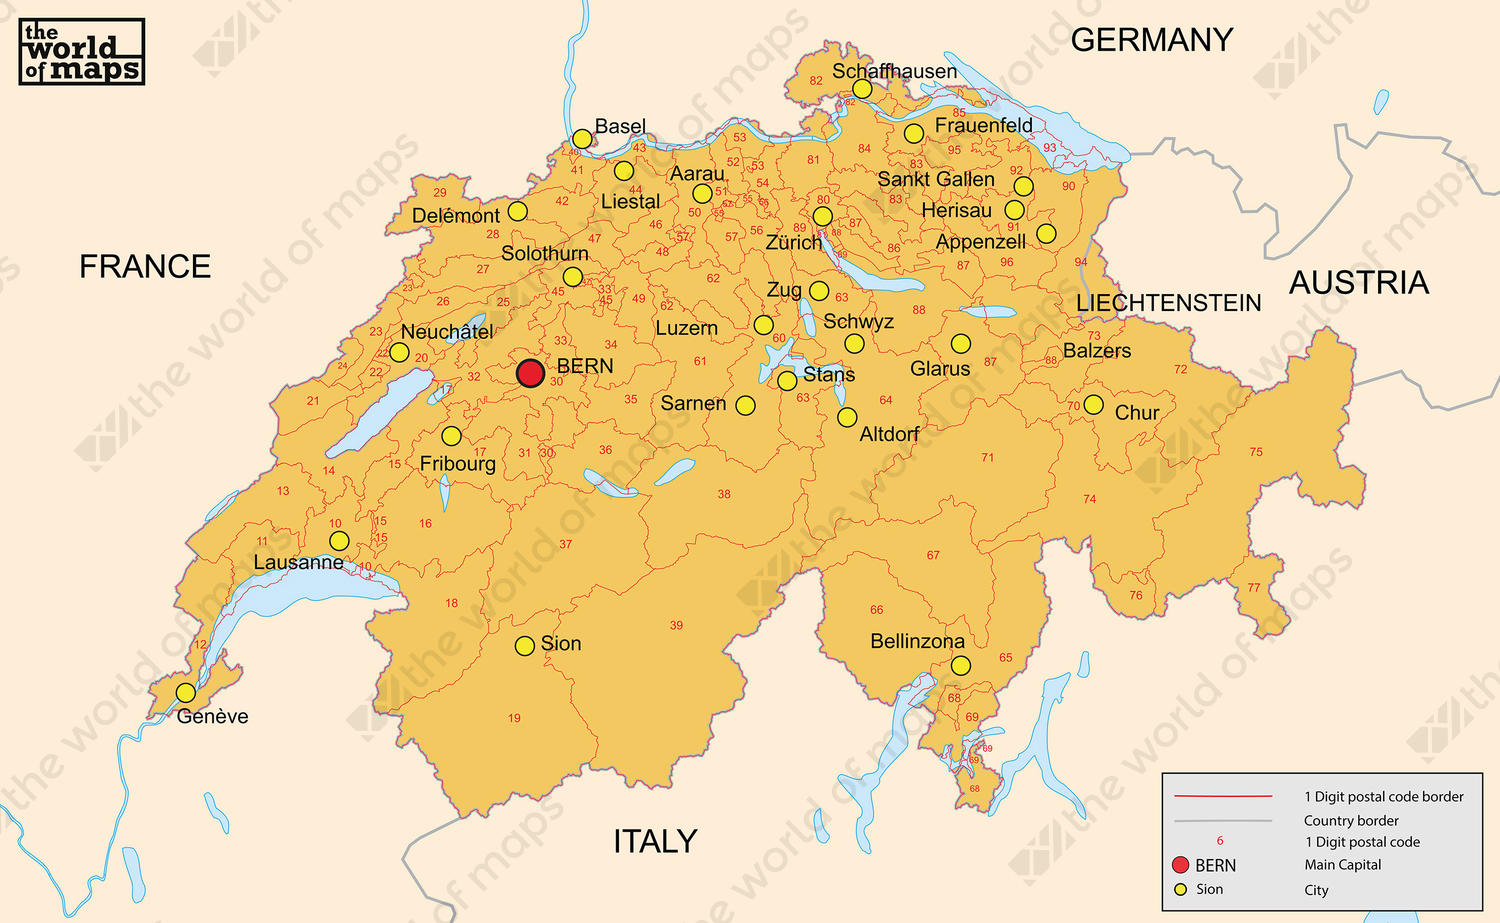 Picture of: Digital Postcode Map Switzerland 2 Digit 527 The World Of Maps Com